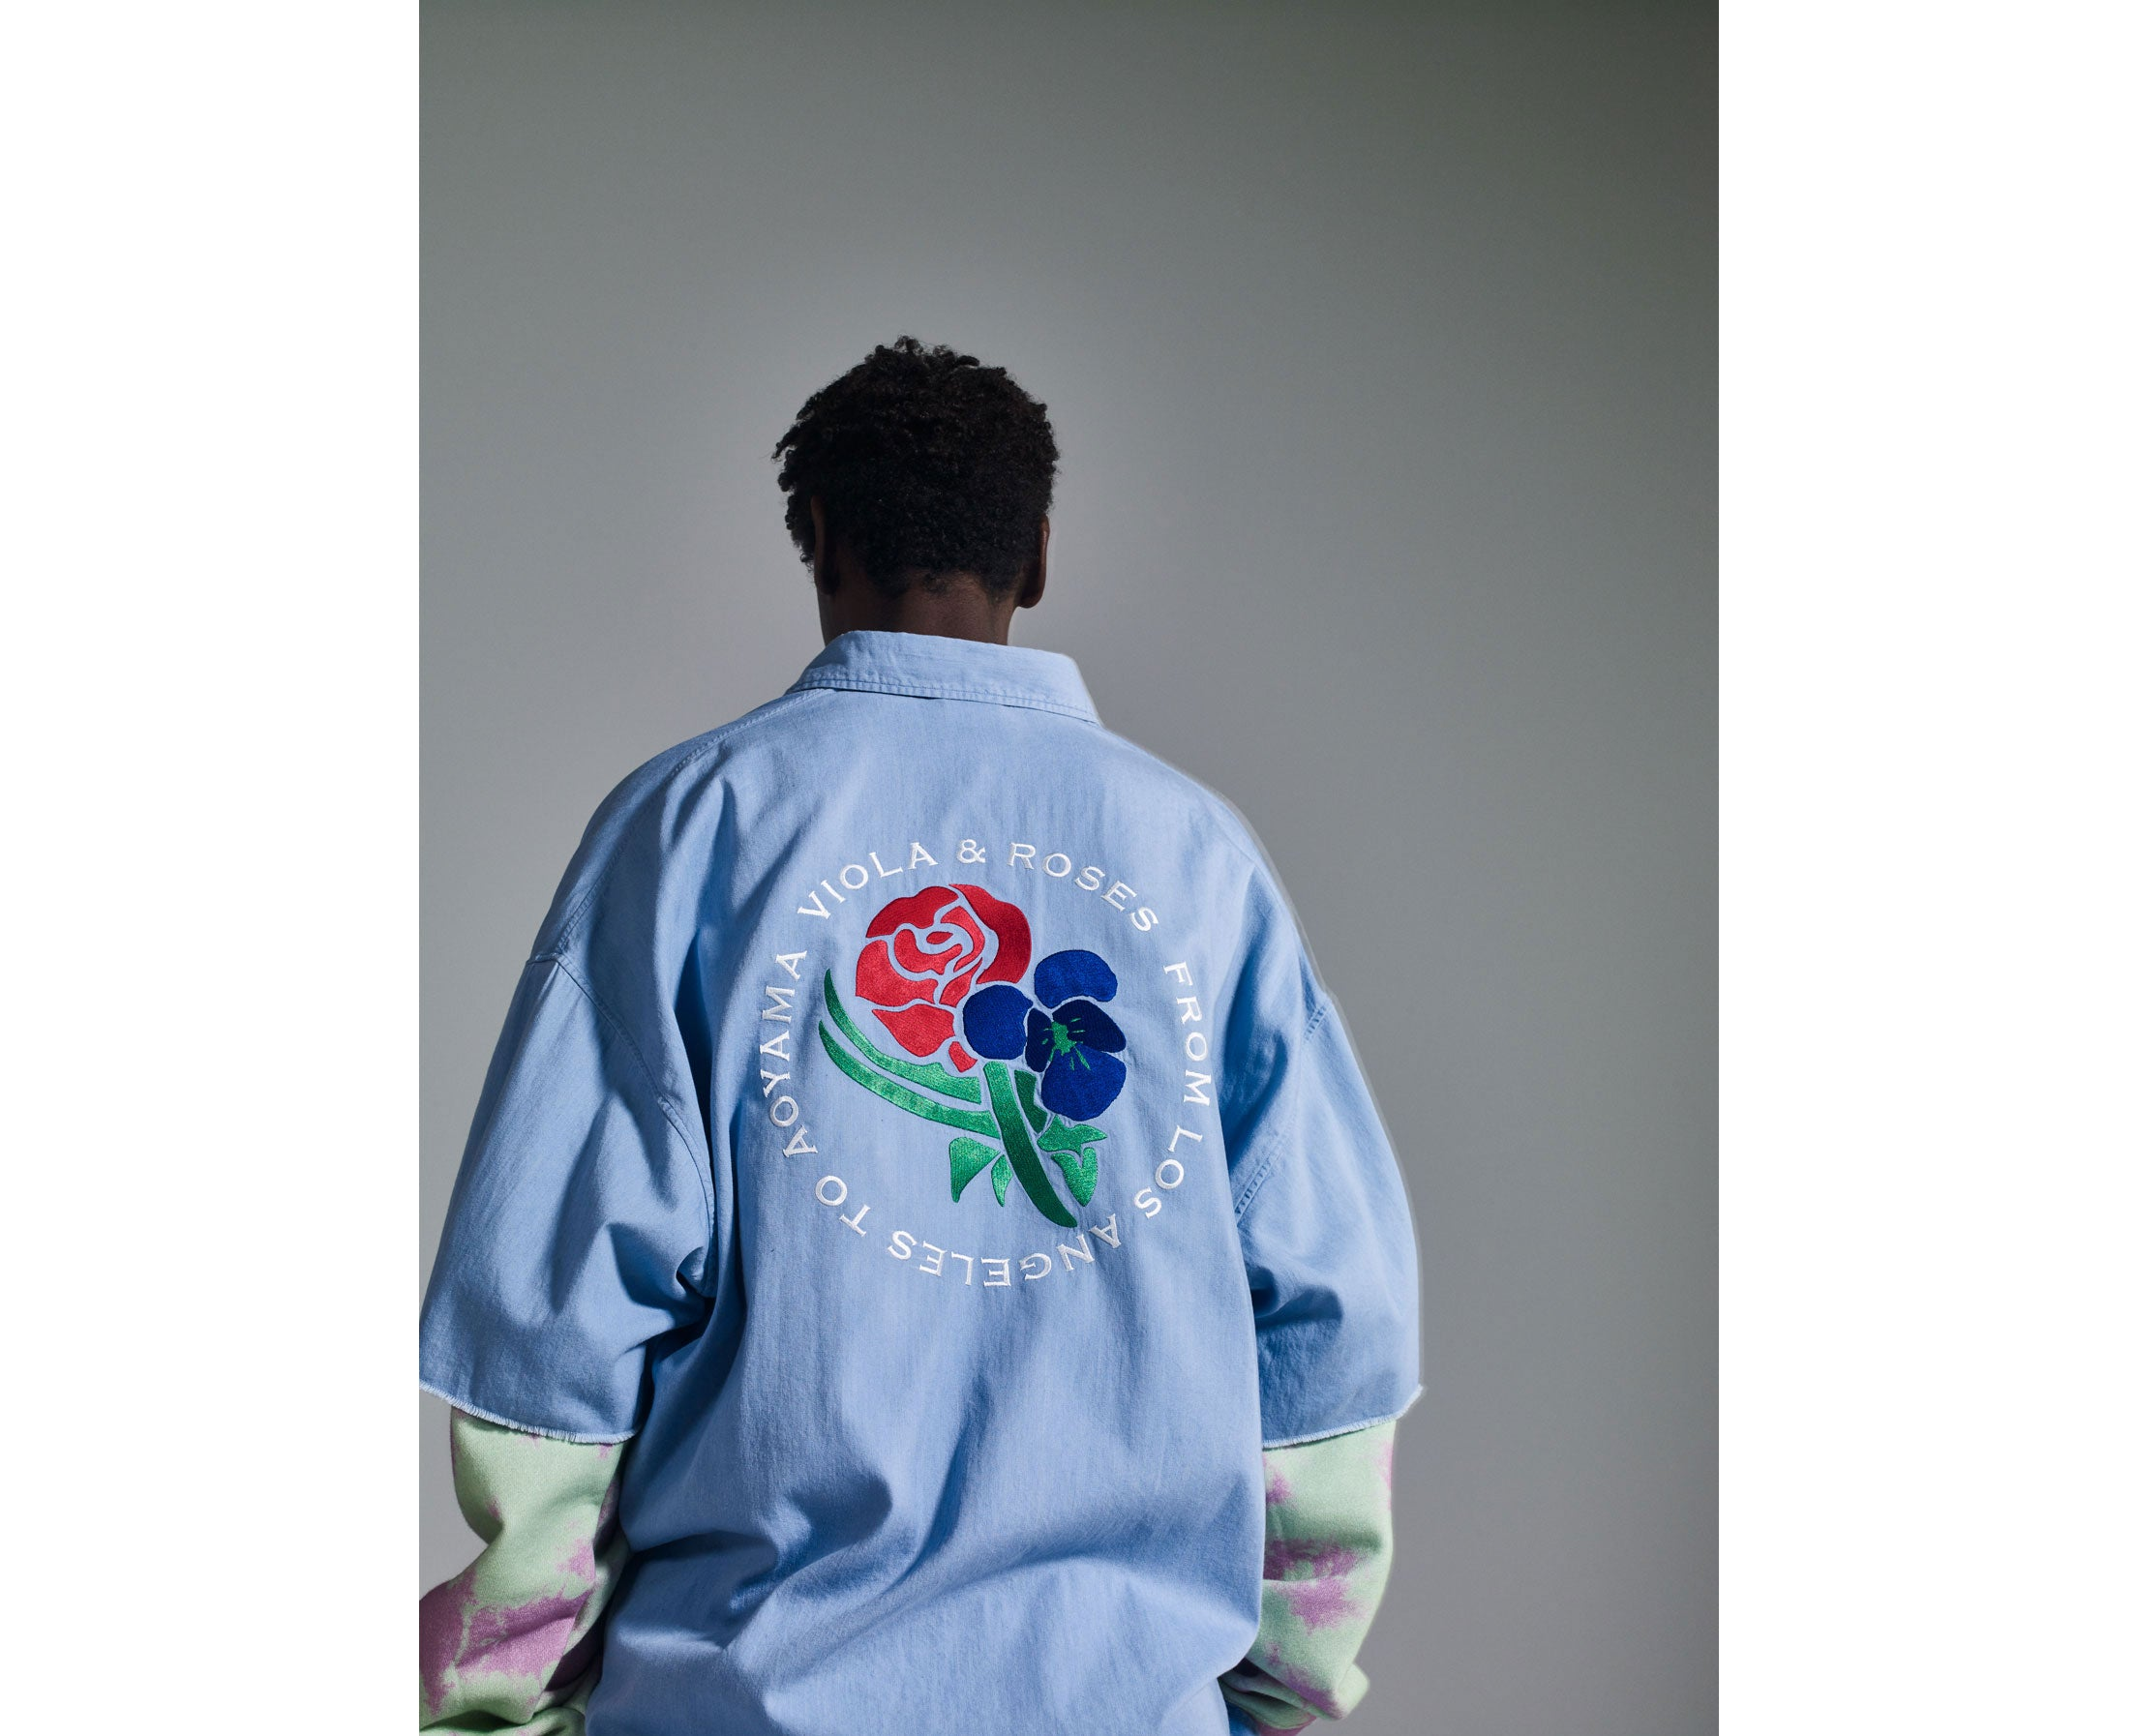 https://www.mrgentleman.jp/products/viola-roses-embroidered-denim-shirt